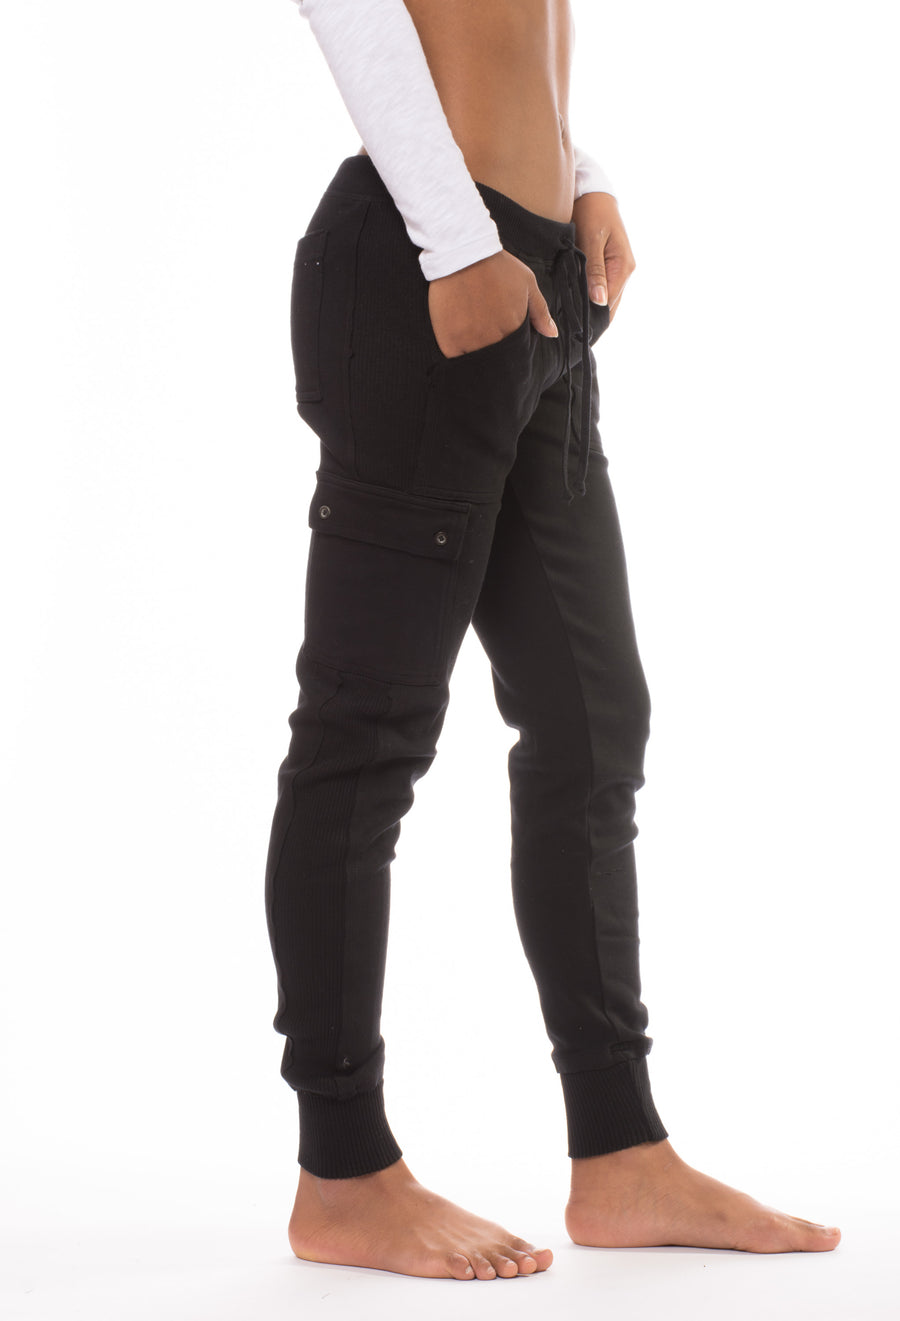 City Cargo Pant (Style DL-11, Black) by Hard Tail Forever